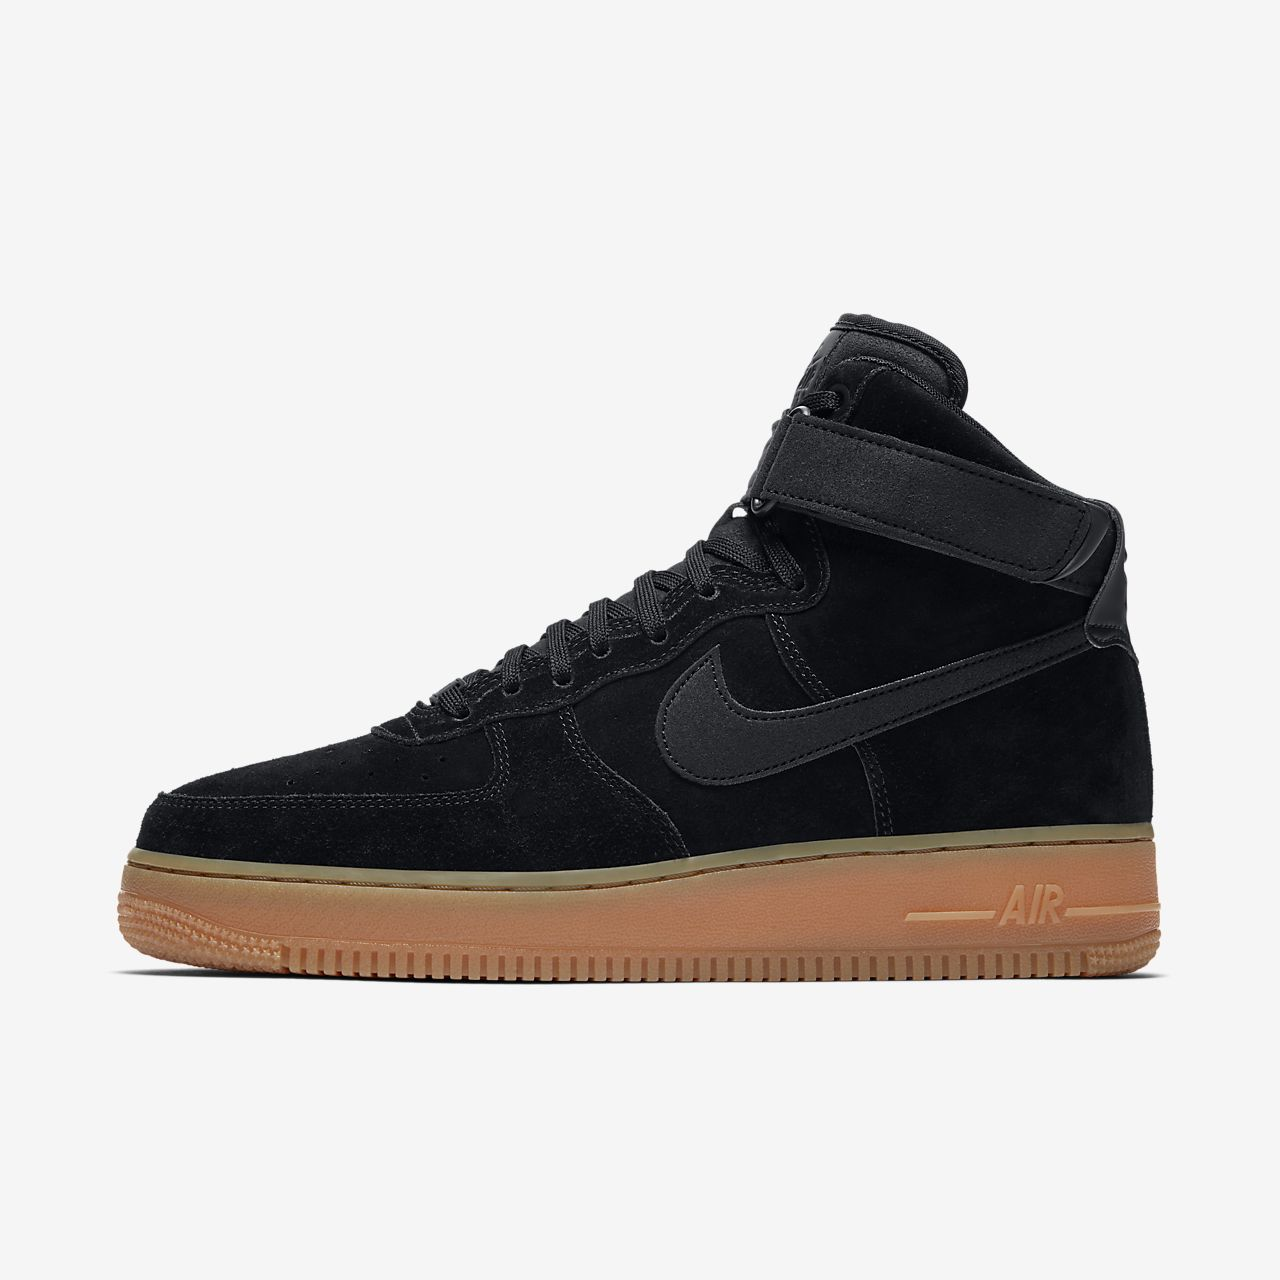 nike men s air force 1 lv8 brown